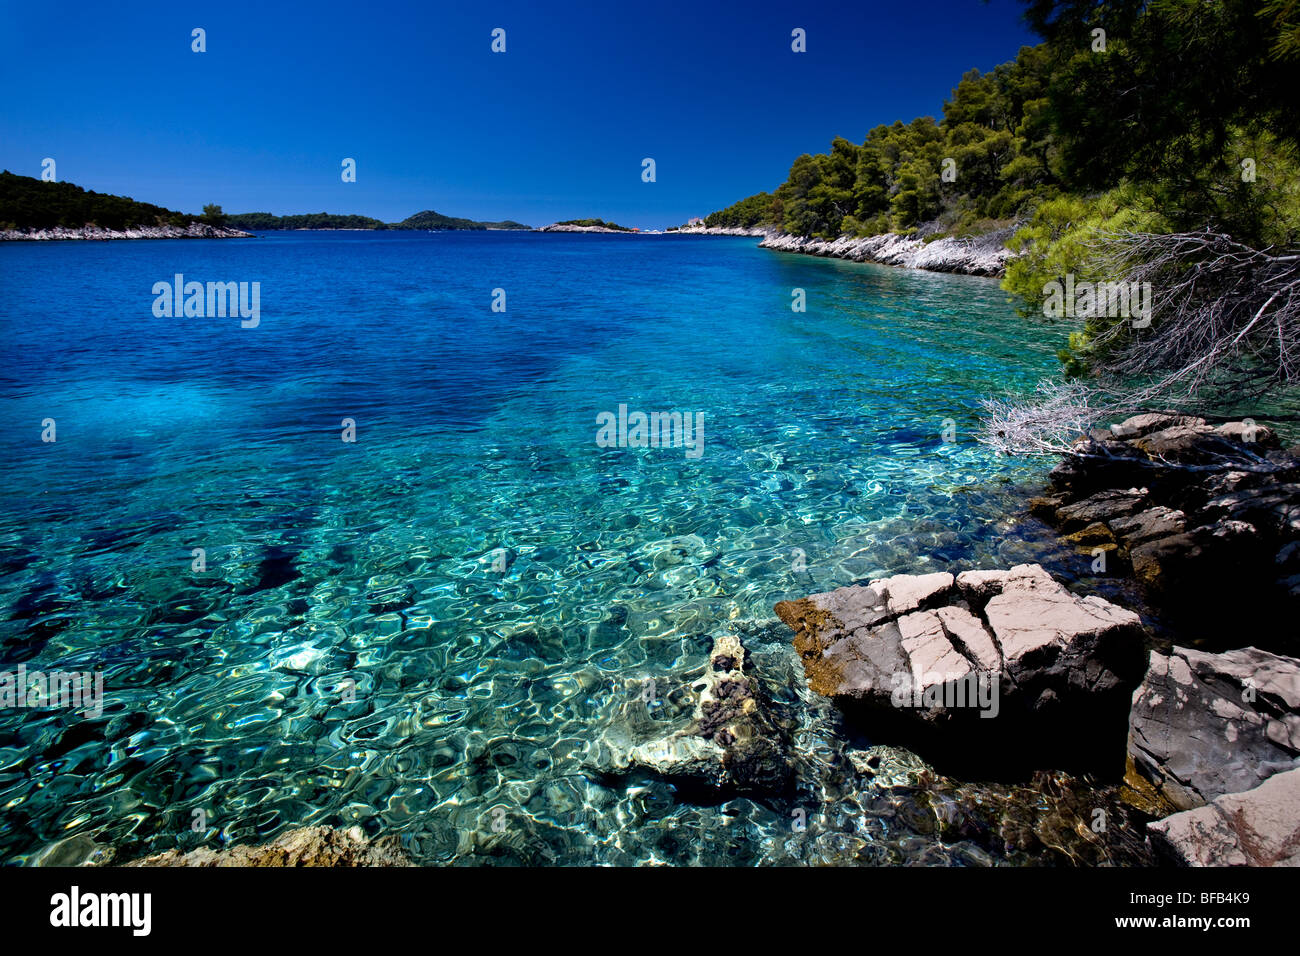 Beautiful secluded bay with crystal clear waters on Korcula Island - Stock Image